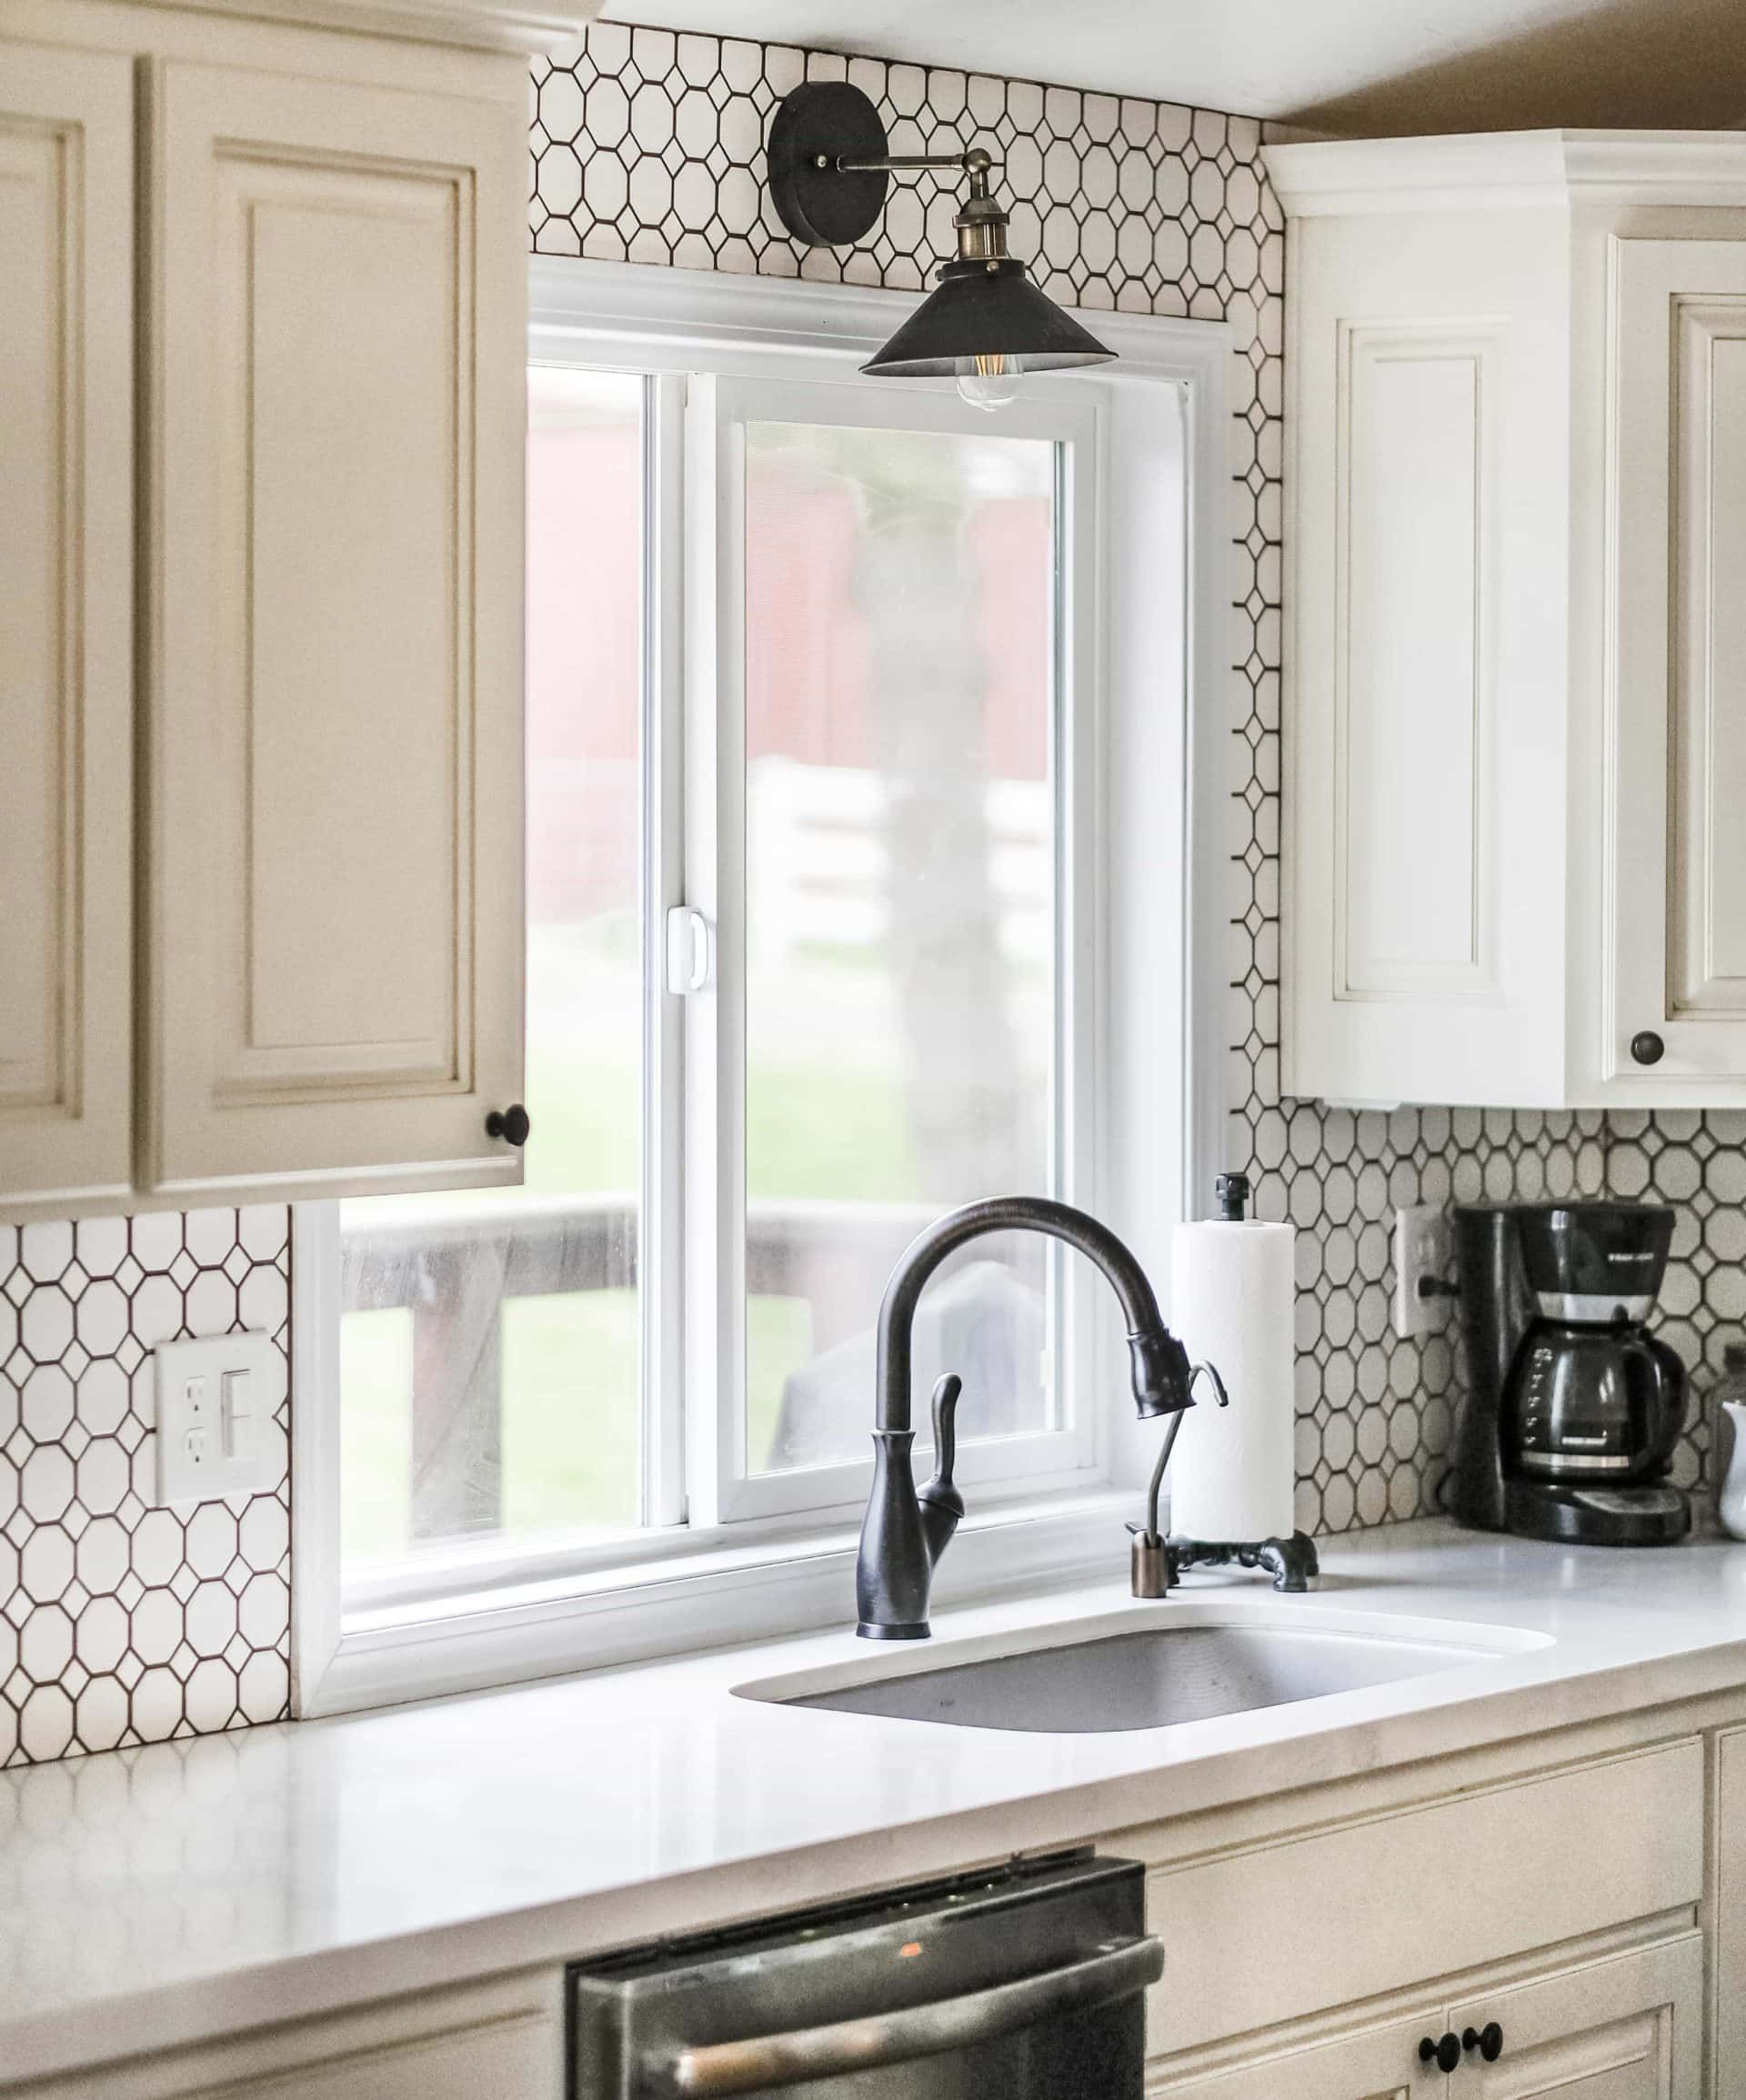 10 Awesome Amazon Finds To Upgrade Your Kitchen On A Budget In 2020 Budget Kitchen Remodel Kitchen Remodel Small Budget Kitchen Makeover